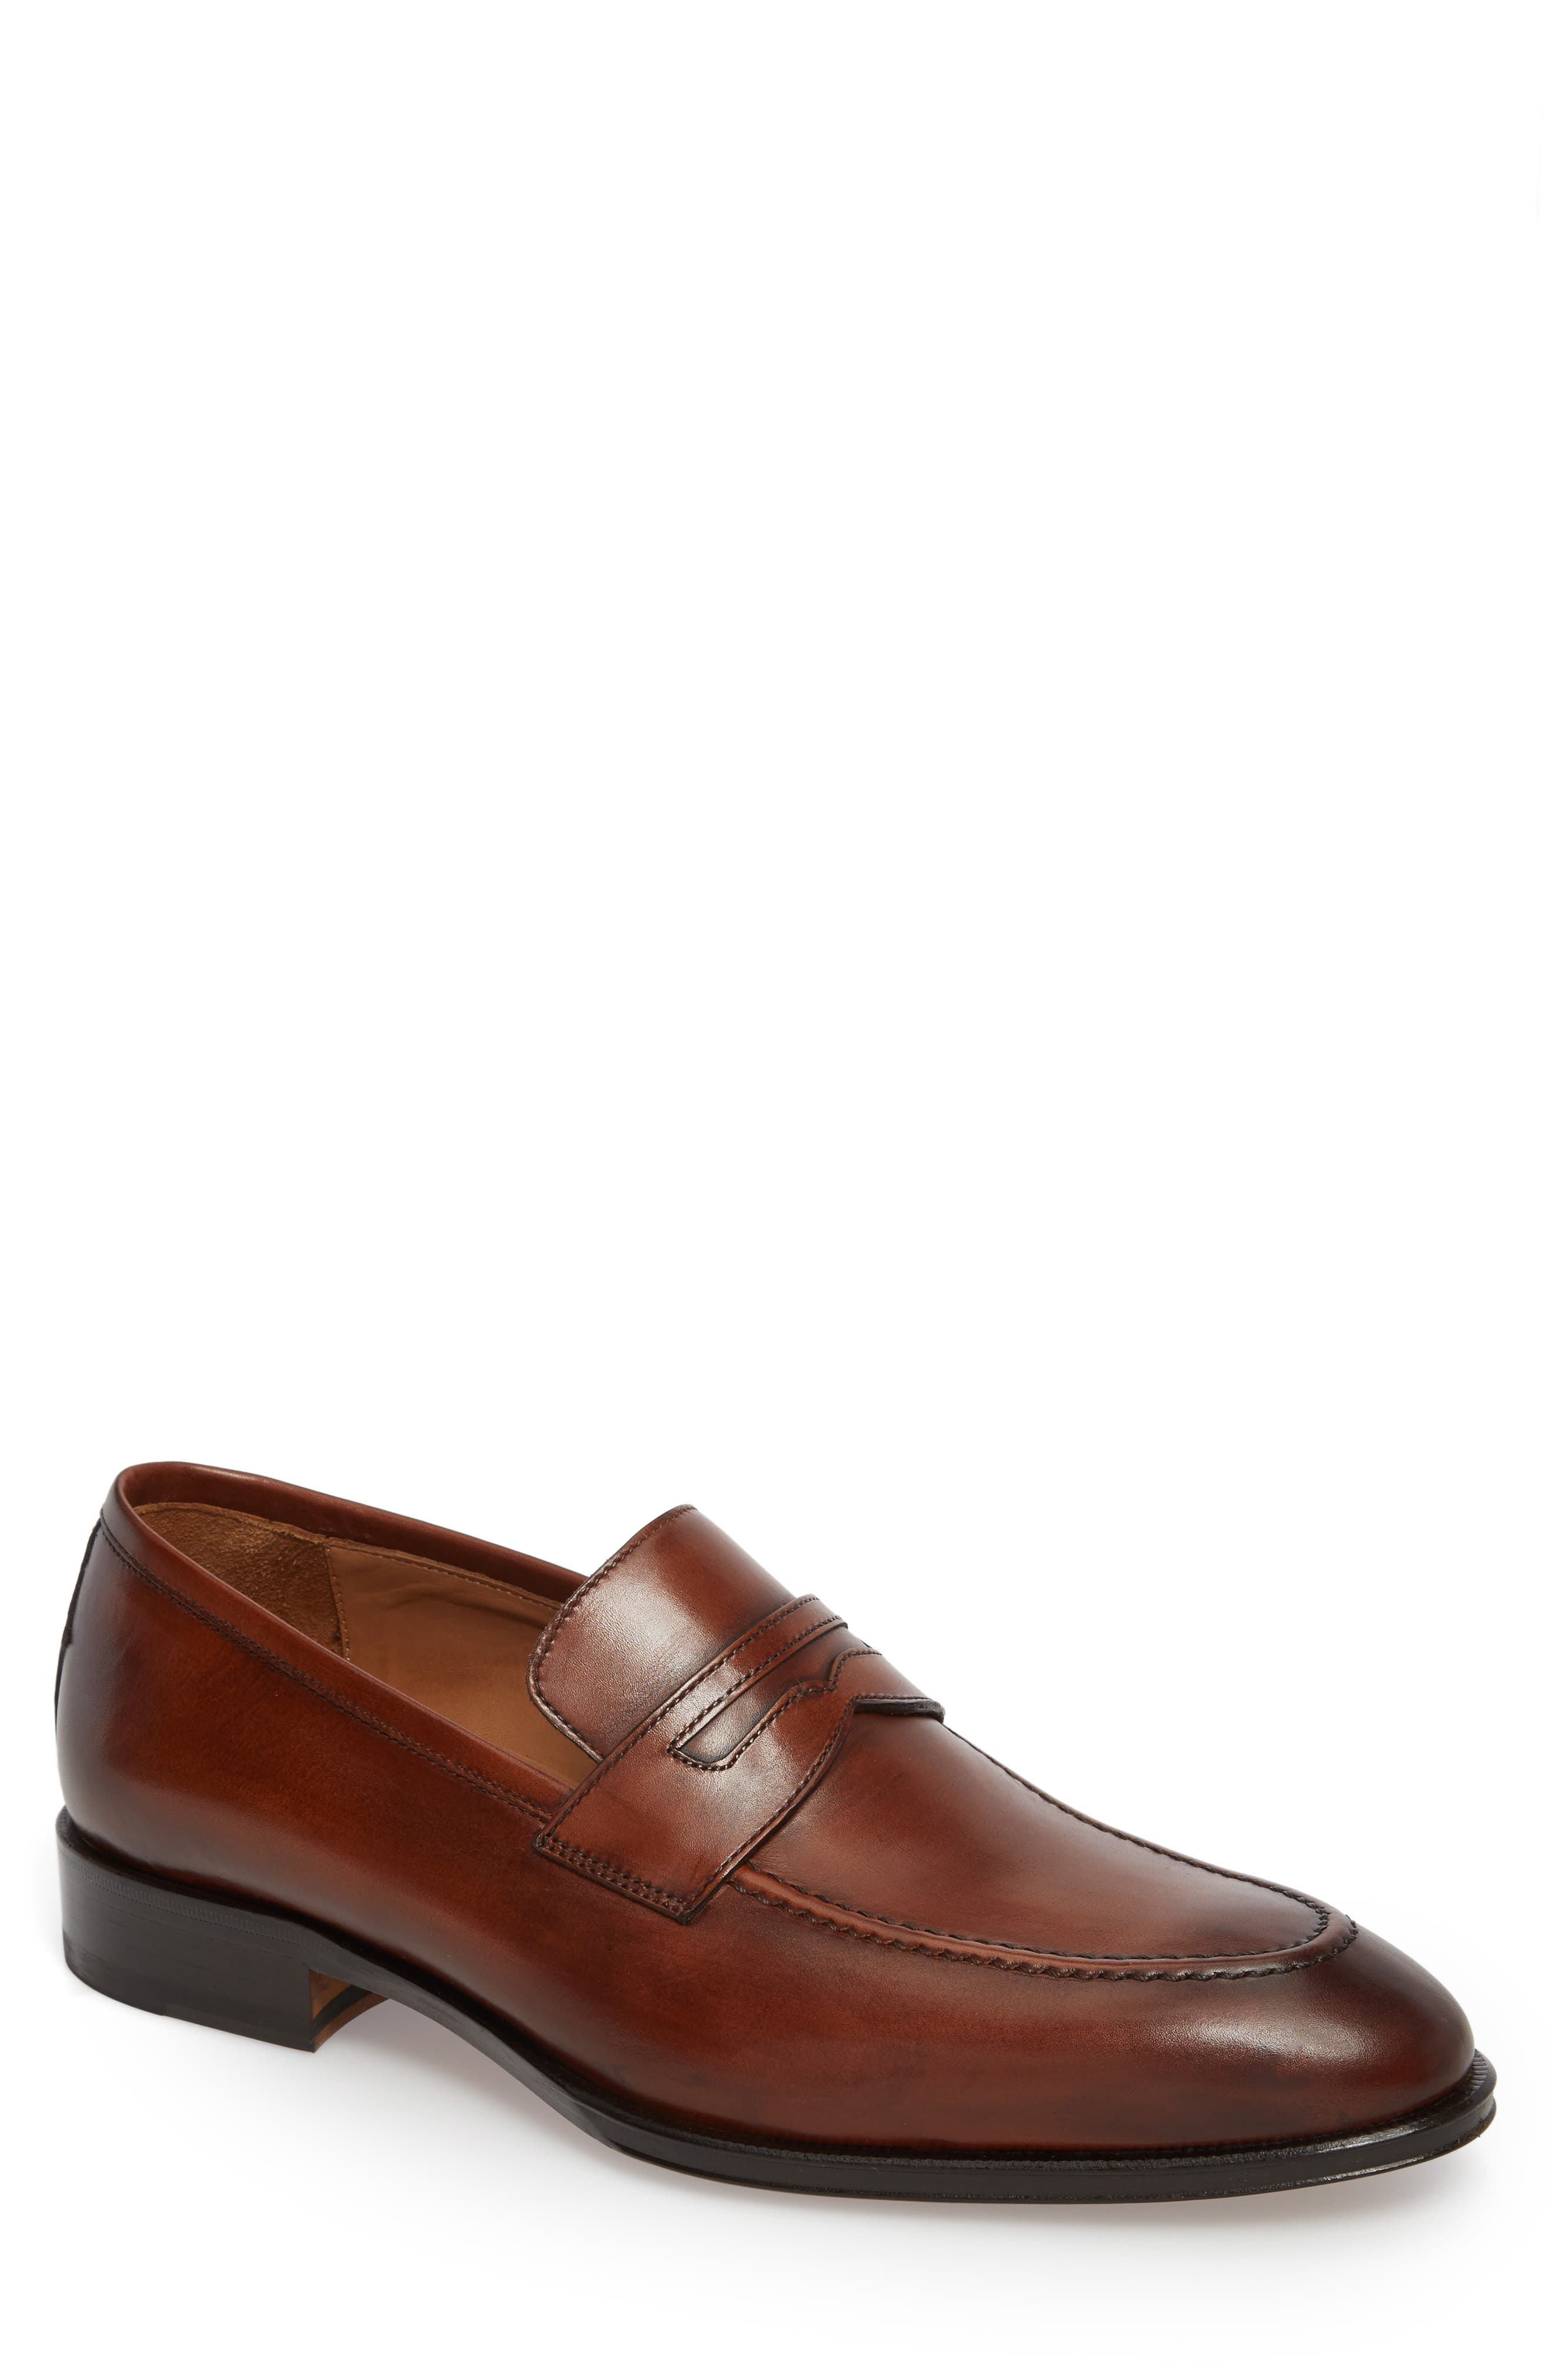 Penny Loafer,                         Main,                         color, Marble Brown